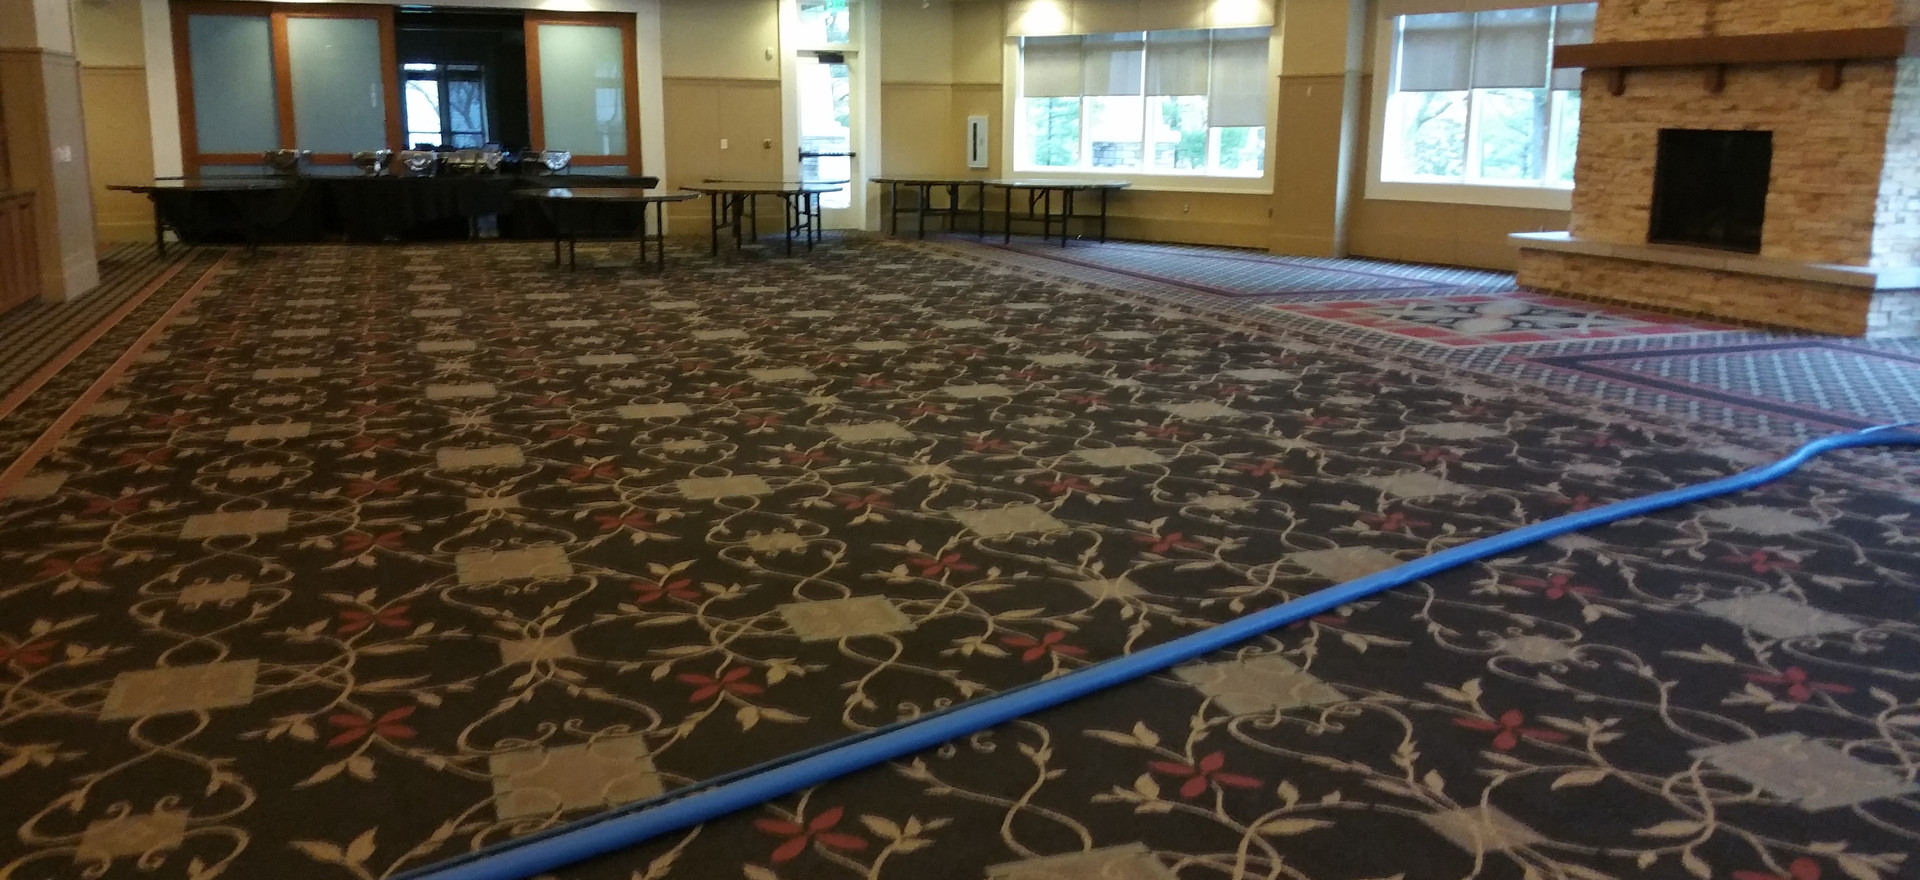 Commercial Carpet Cleaning in Ann Arbor Michigan